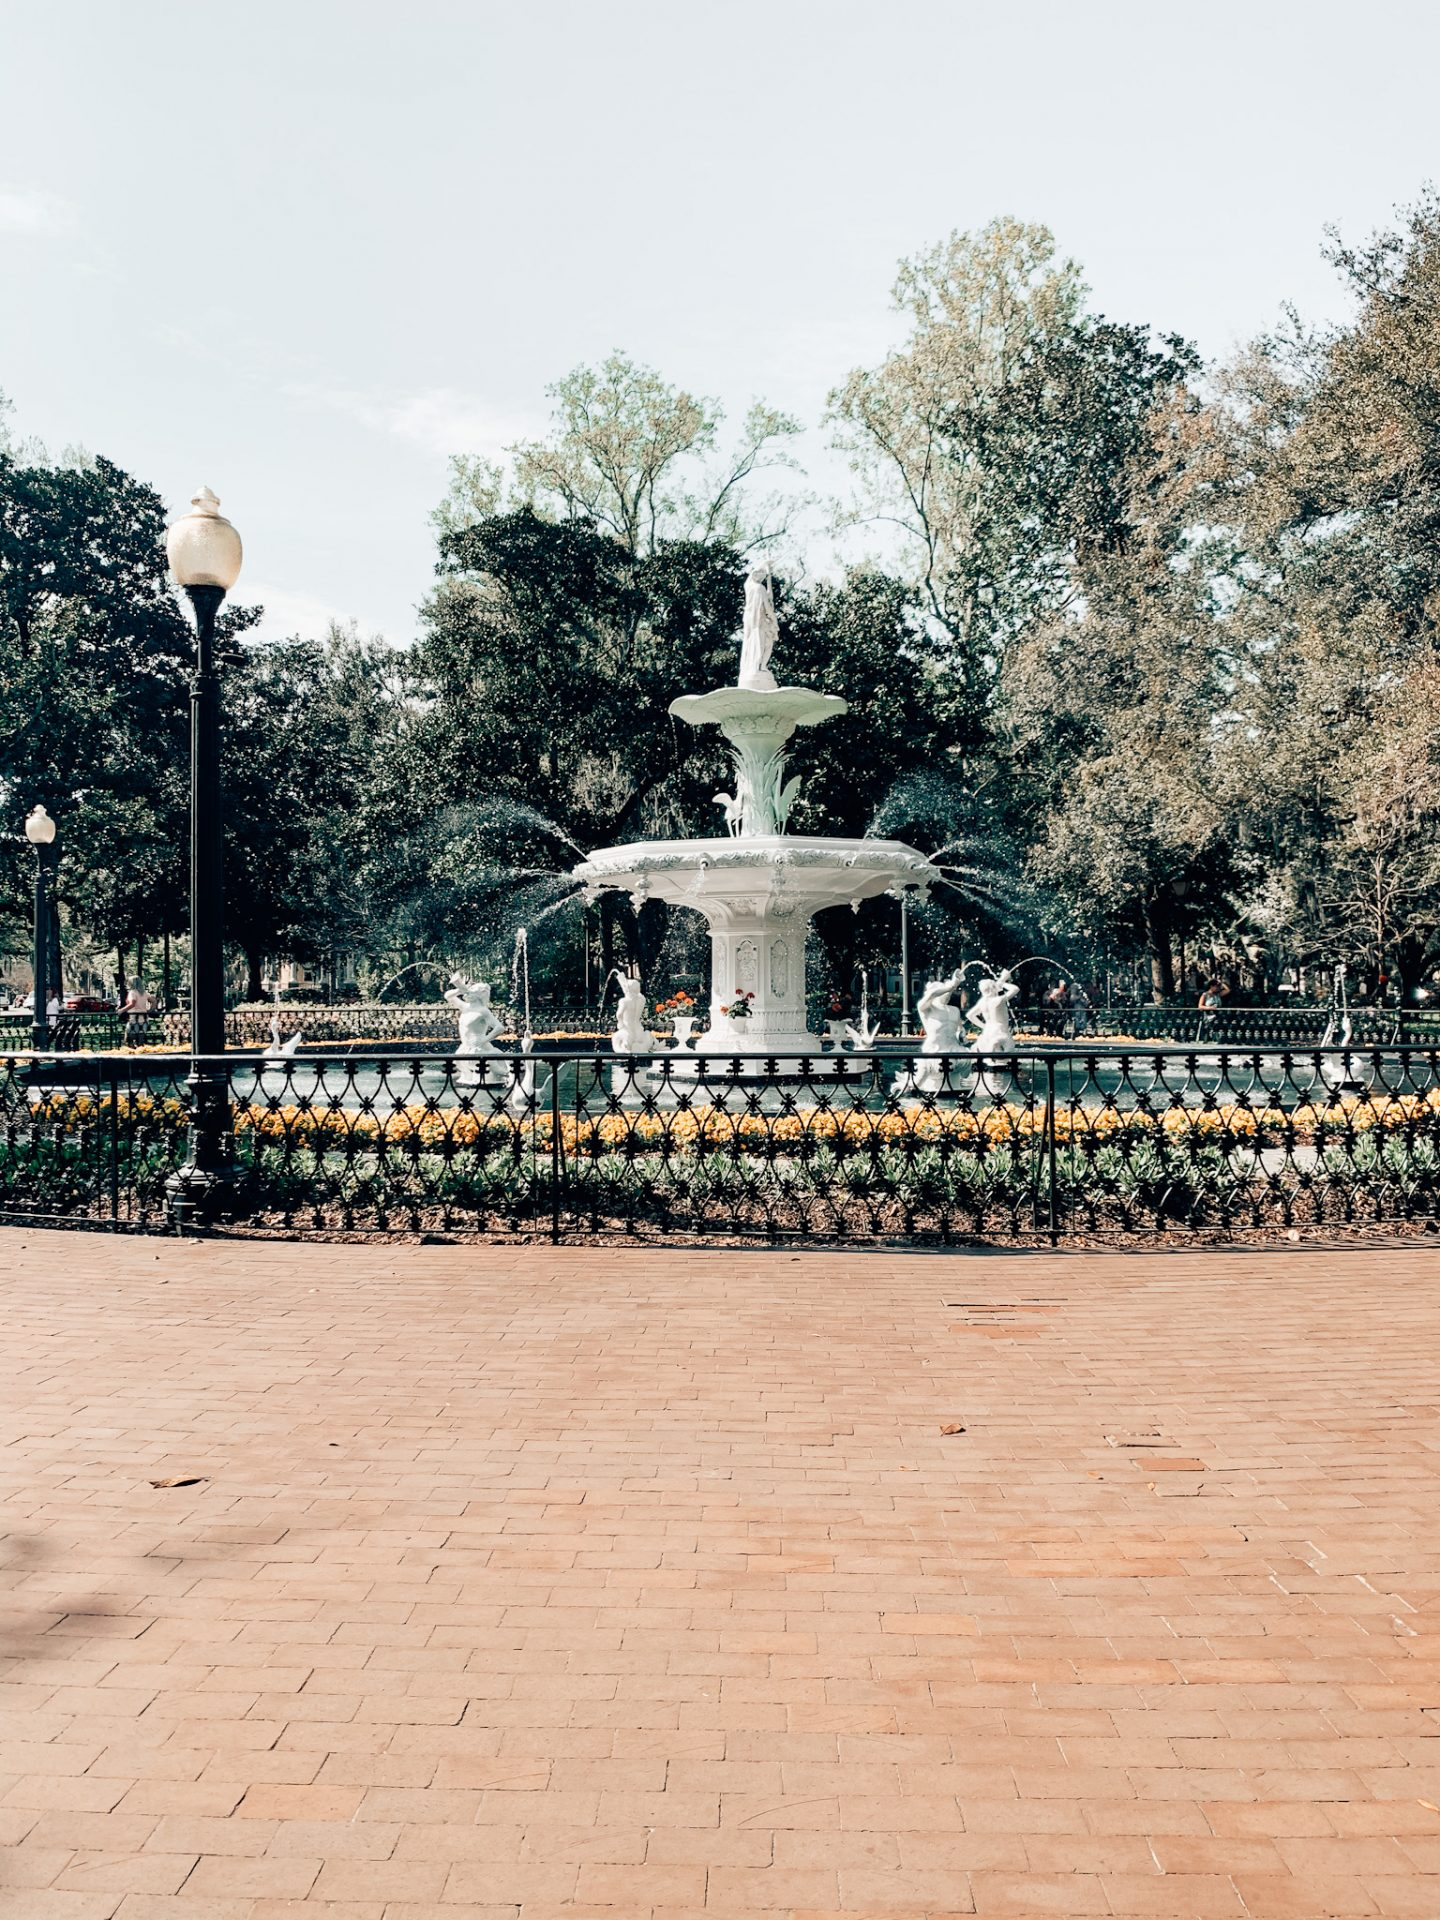 The fountain at Forsyth Park in Savannah, GA